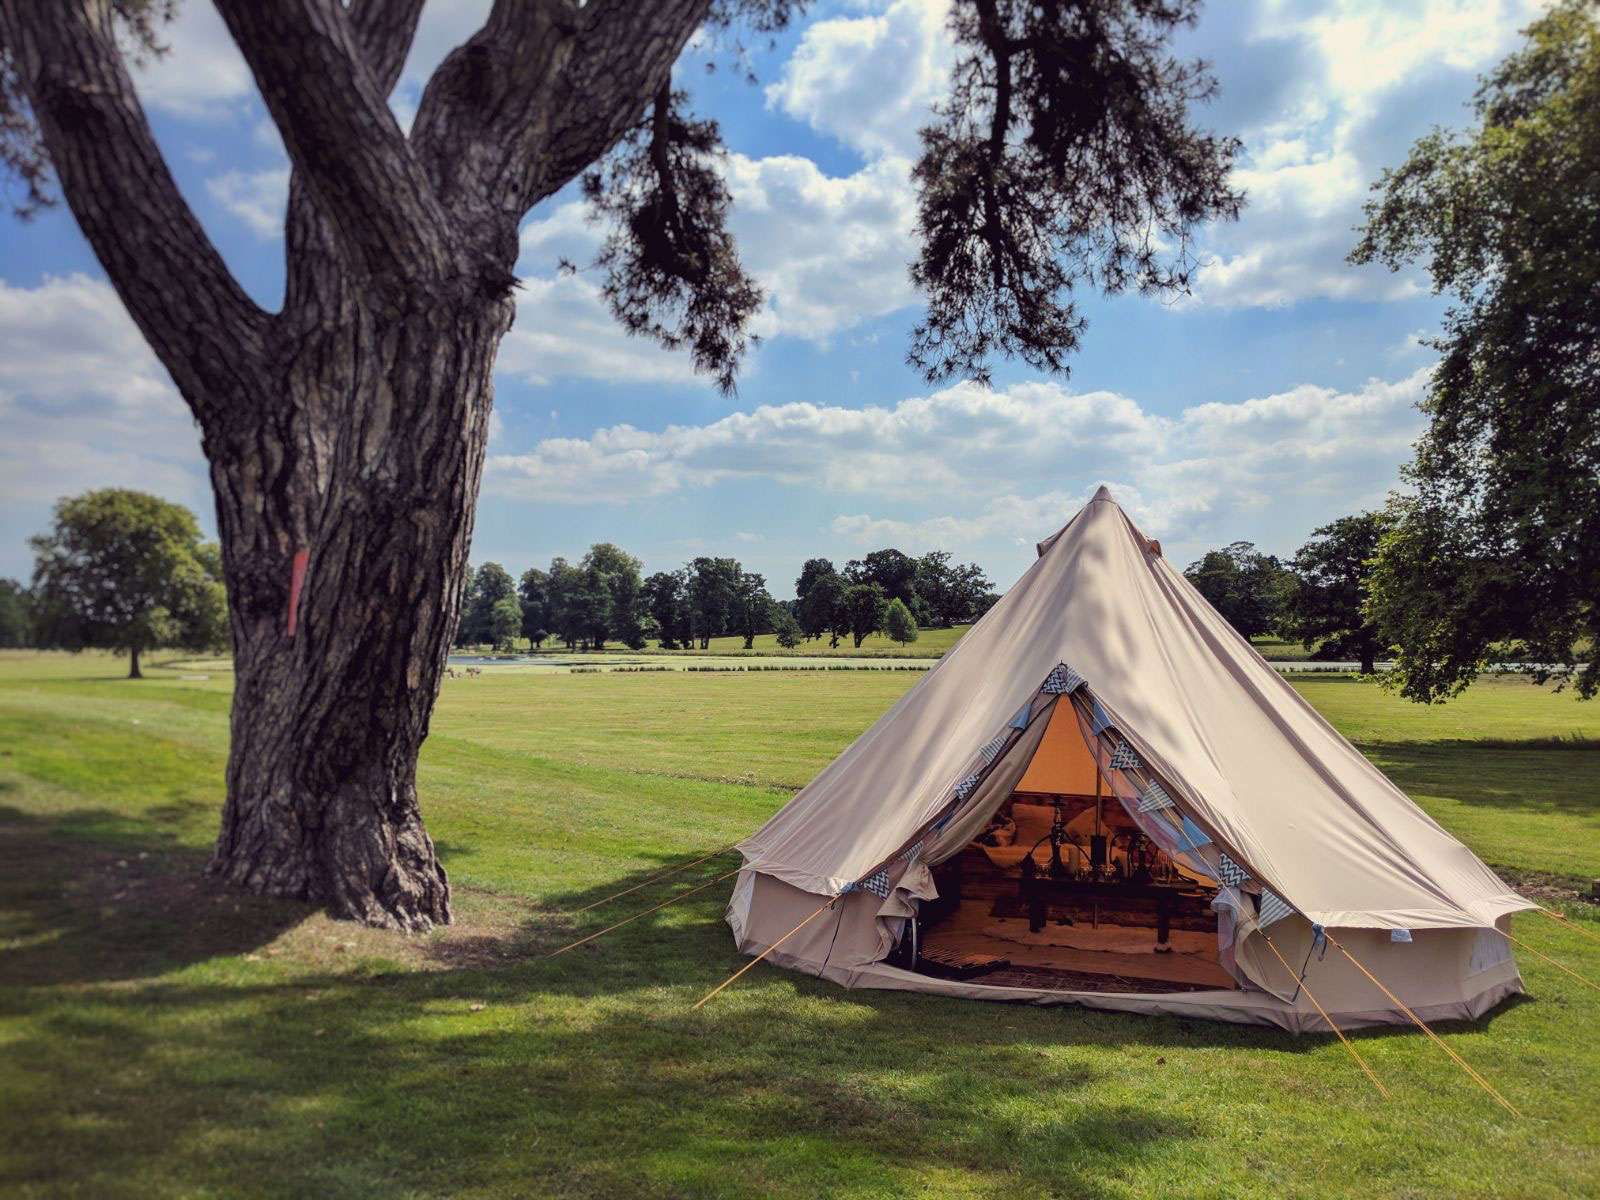 Shakespeare v.i.p glamping at chillham castle